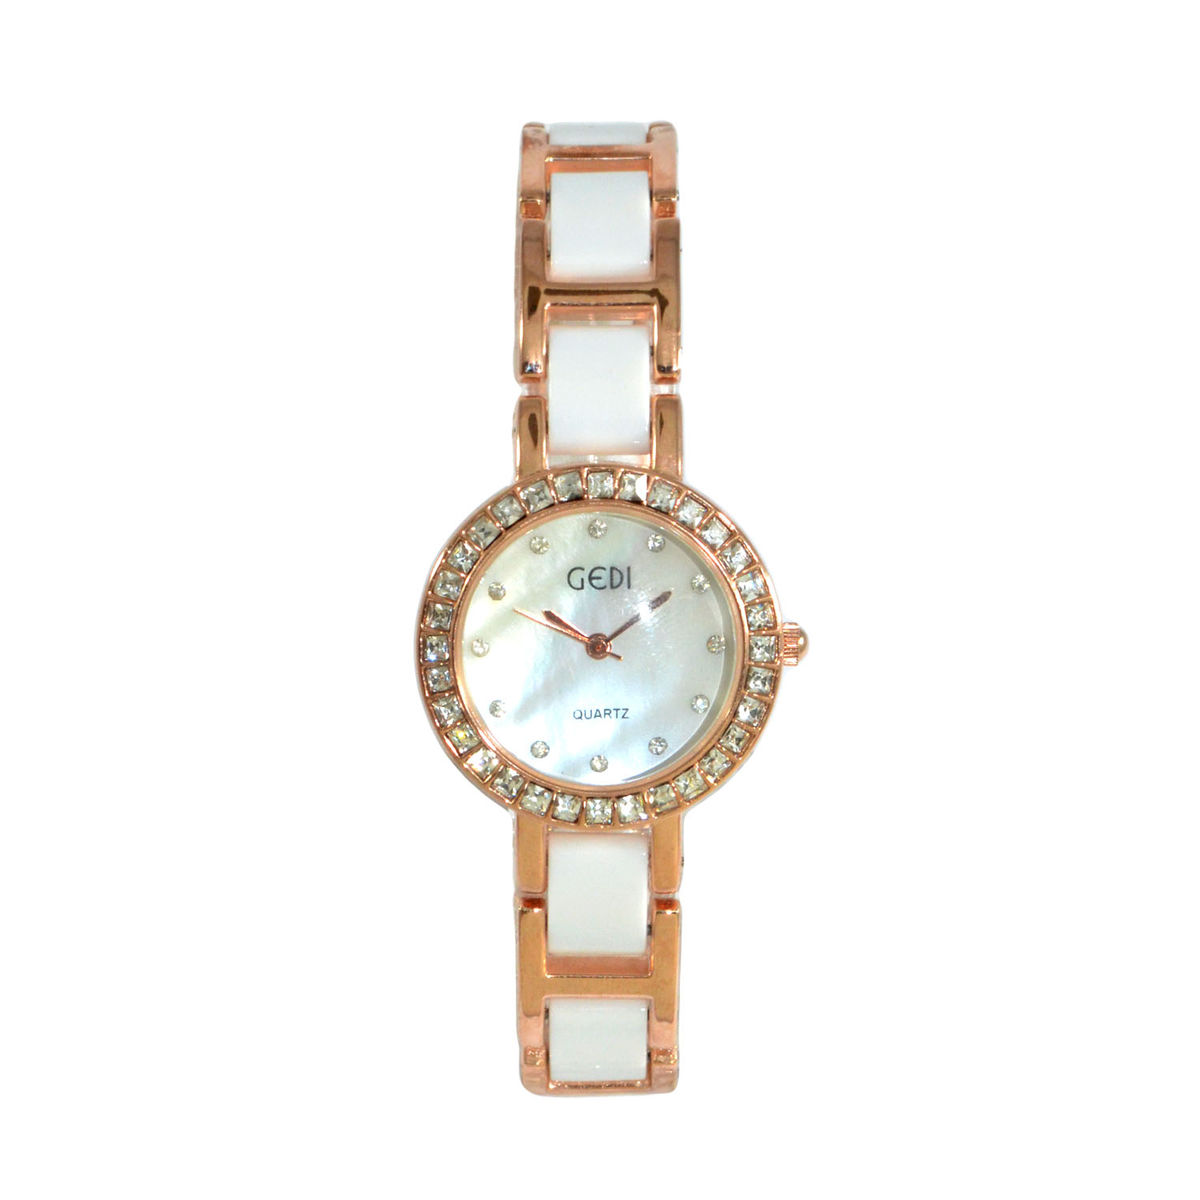 CRYSTAL WATCH - Rings & Tings   Online fashion store   Shop the latest trends